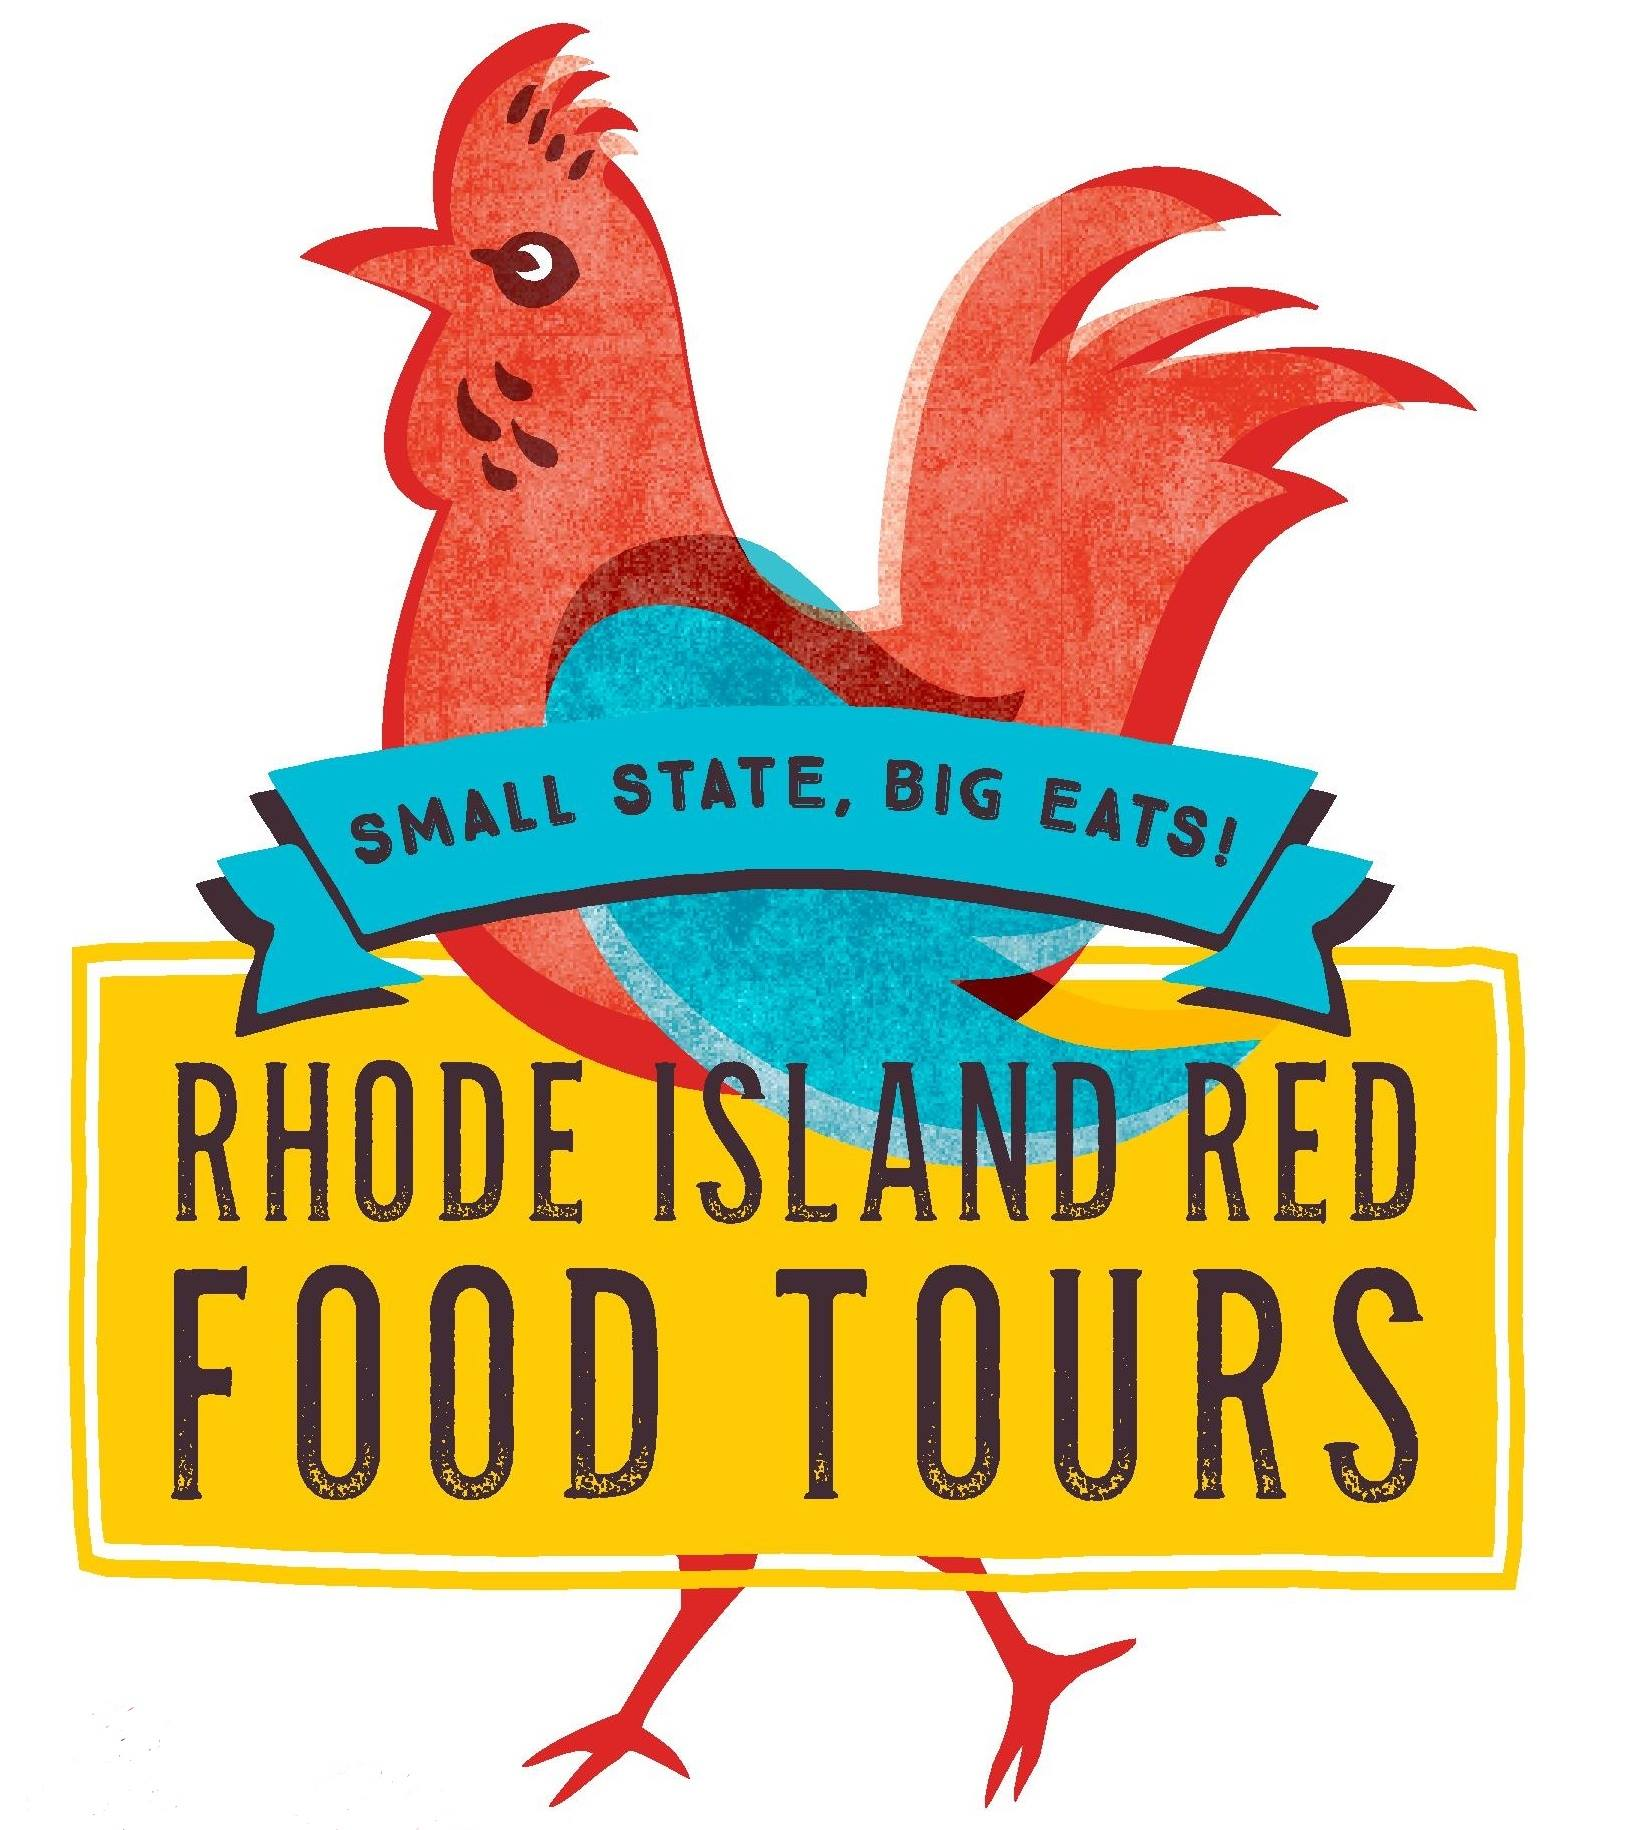 Image courtesy of  Rhode Island Red Food Tours